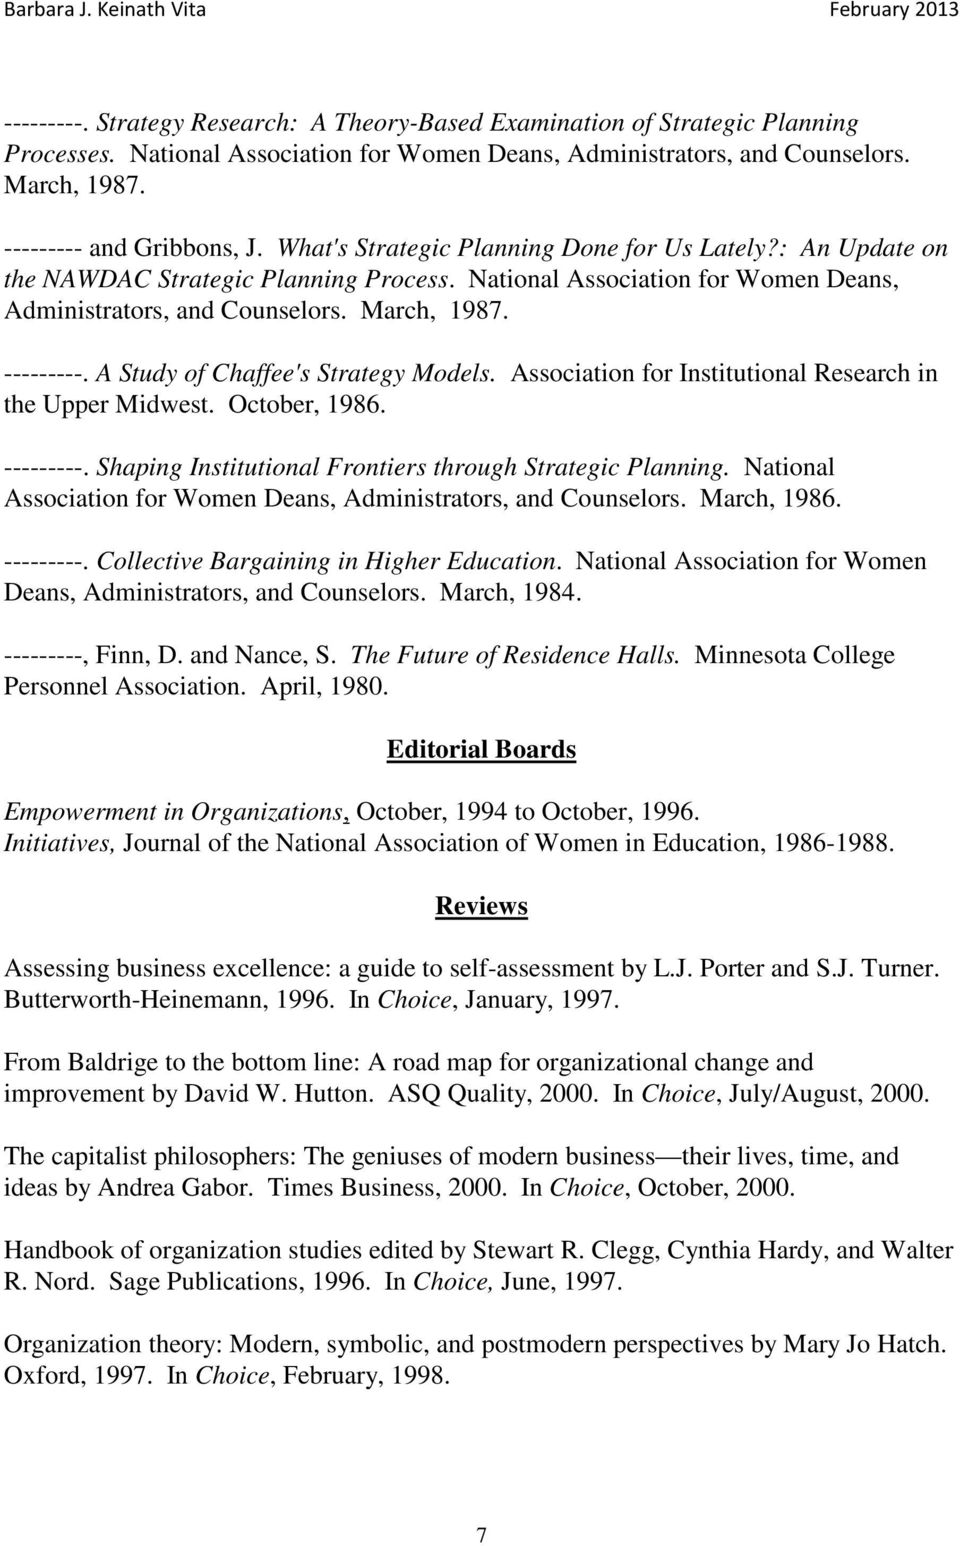 A Study of Chaffee's Strategy Models. Association for Institutional Research in the Upper Midwest. October, 1986. ---------. Shaping Institutional Frontiers through Strategic Planning.